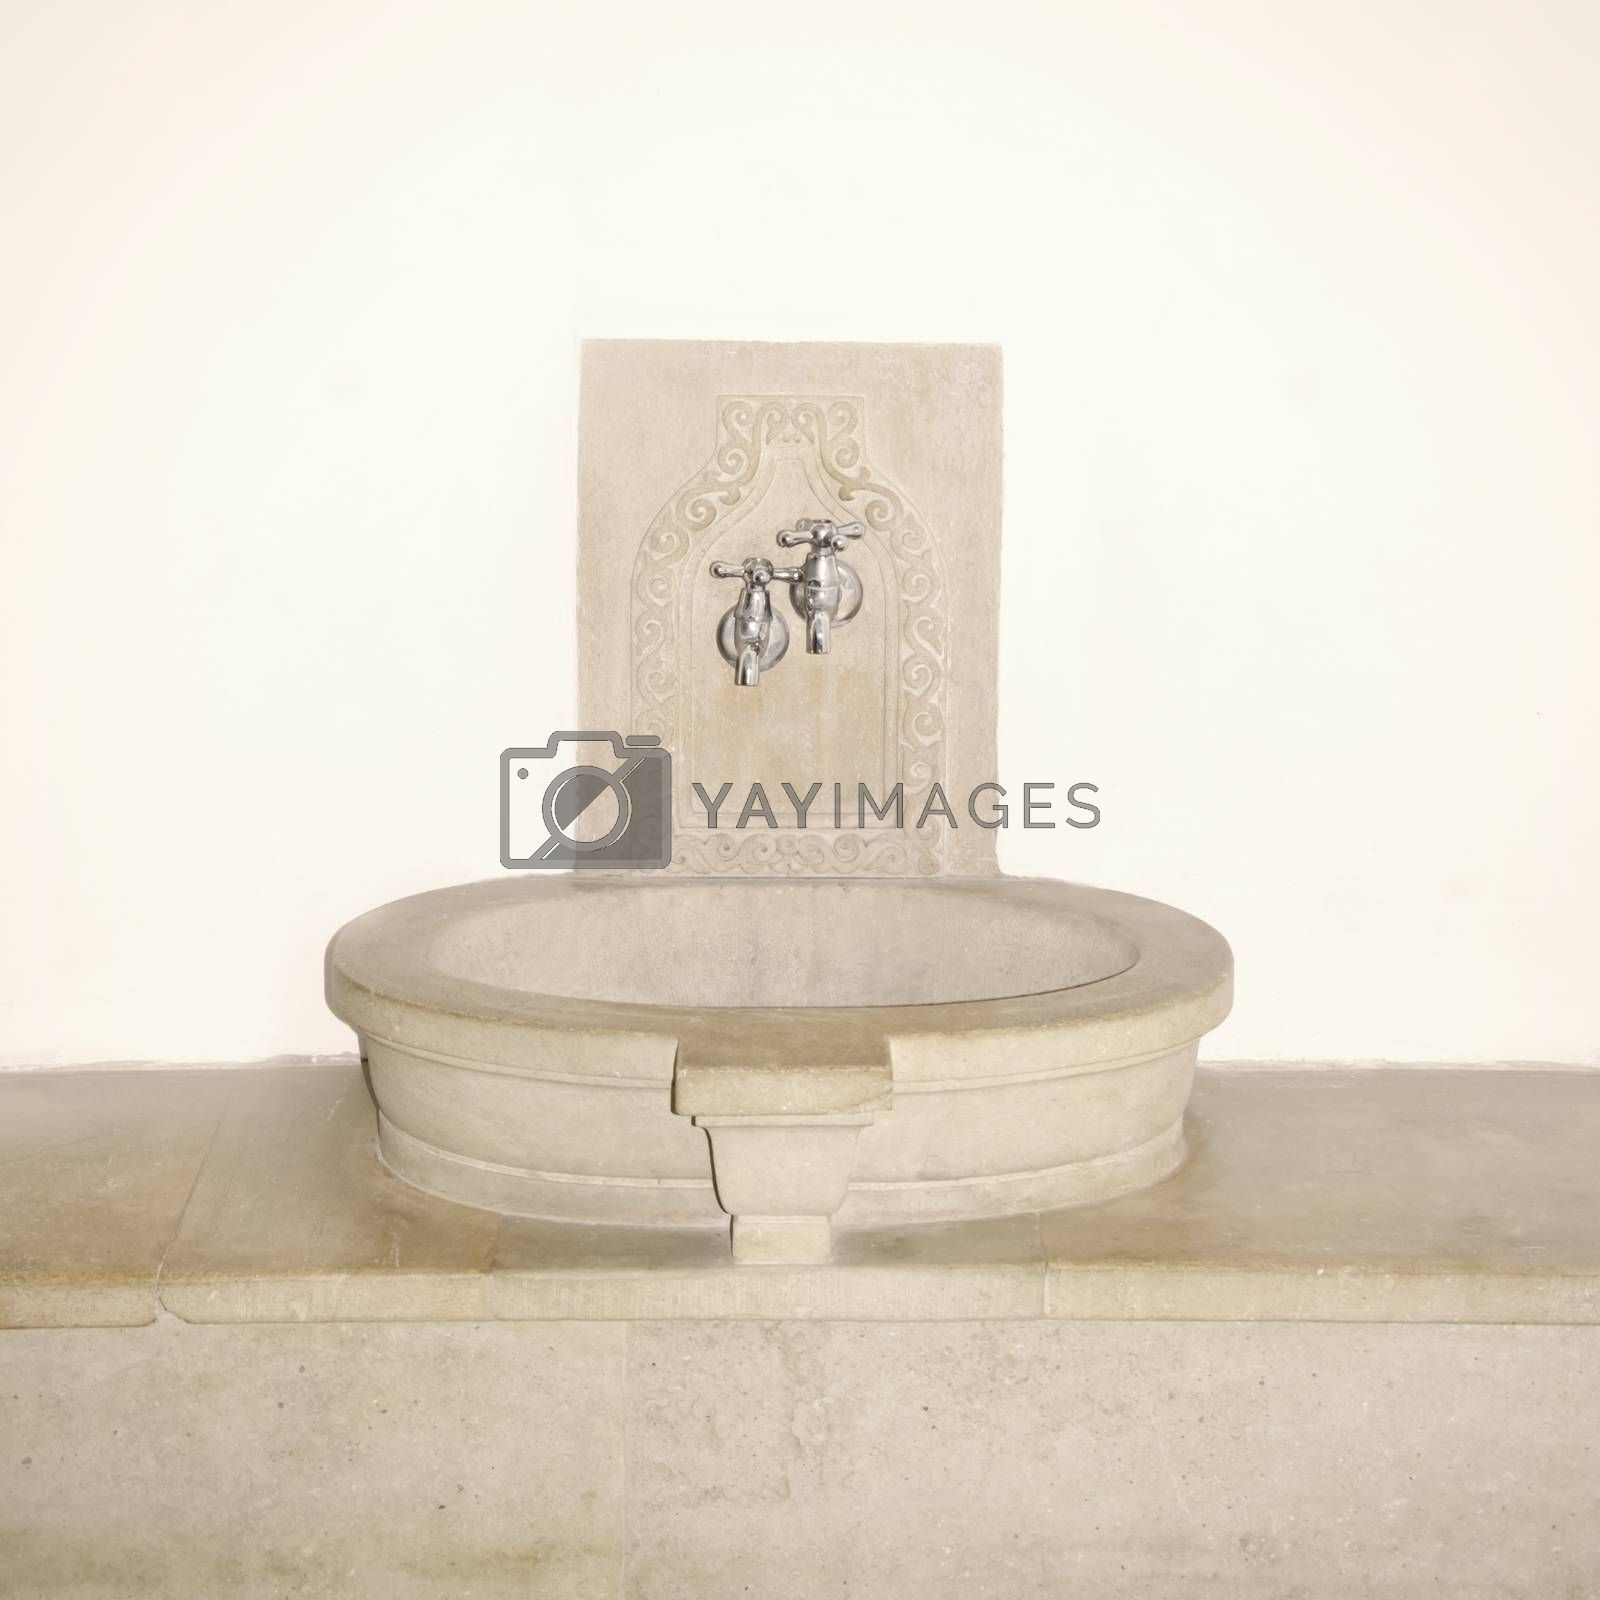 Vintage Stone Sink and Faucet Over White Wall